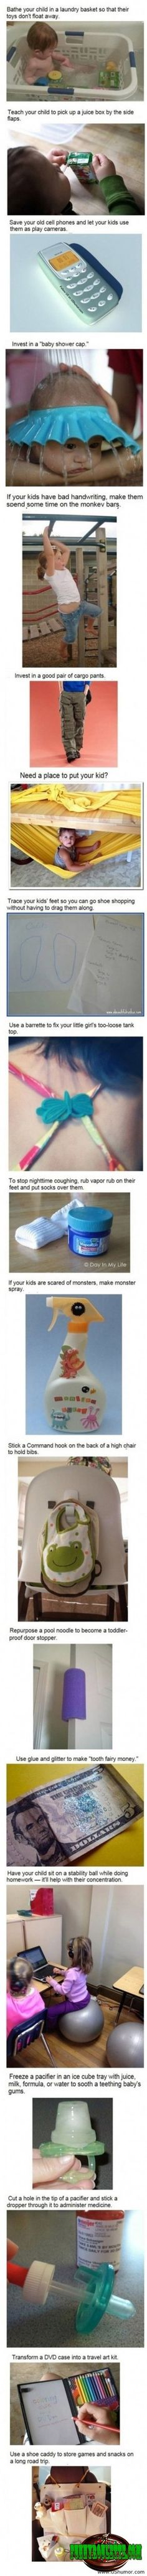 Hahaha, OMG look at this Parenting doing right